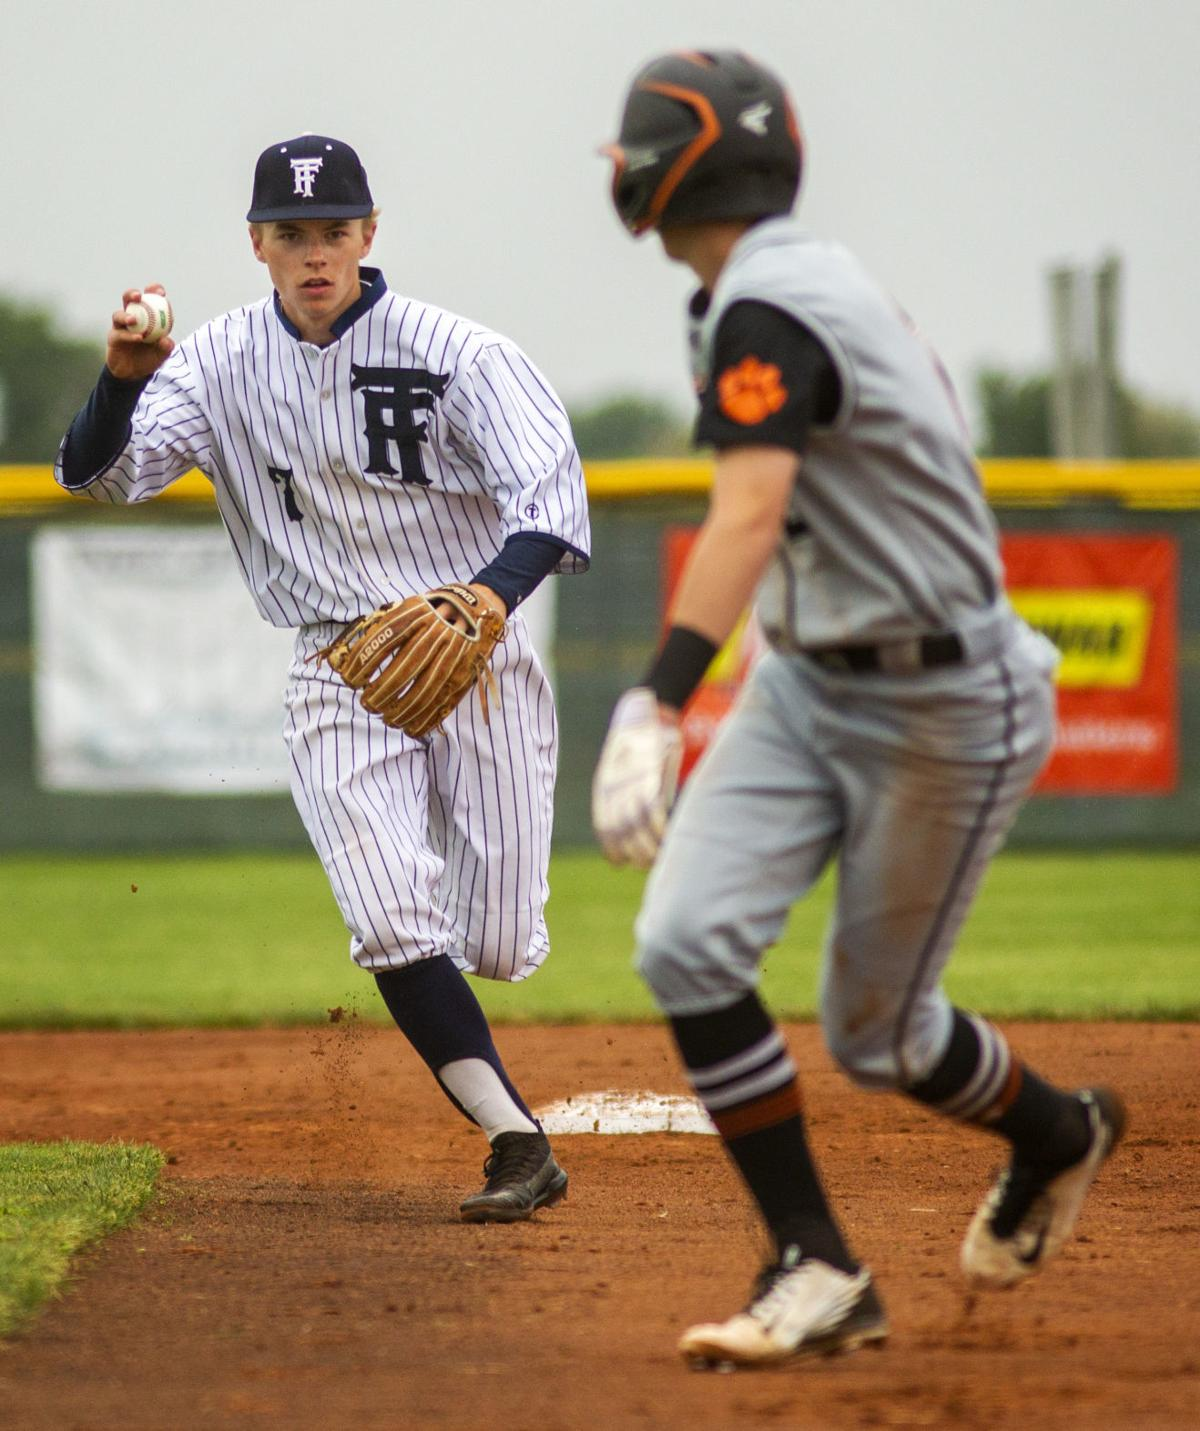 Twin Falls falls to Idaho Falls